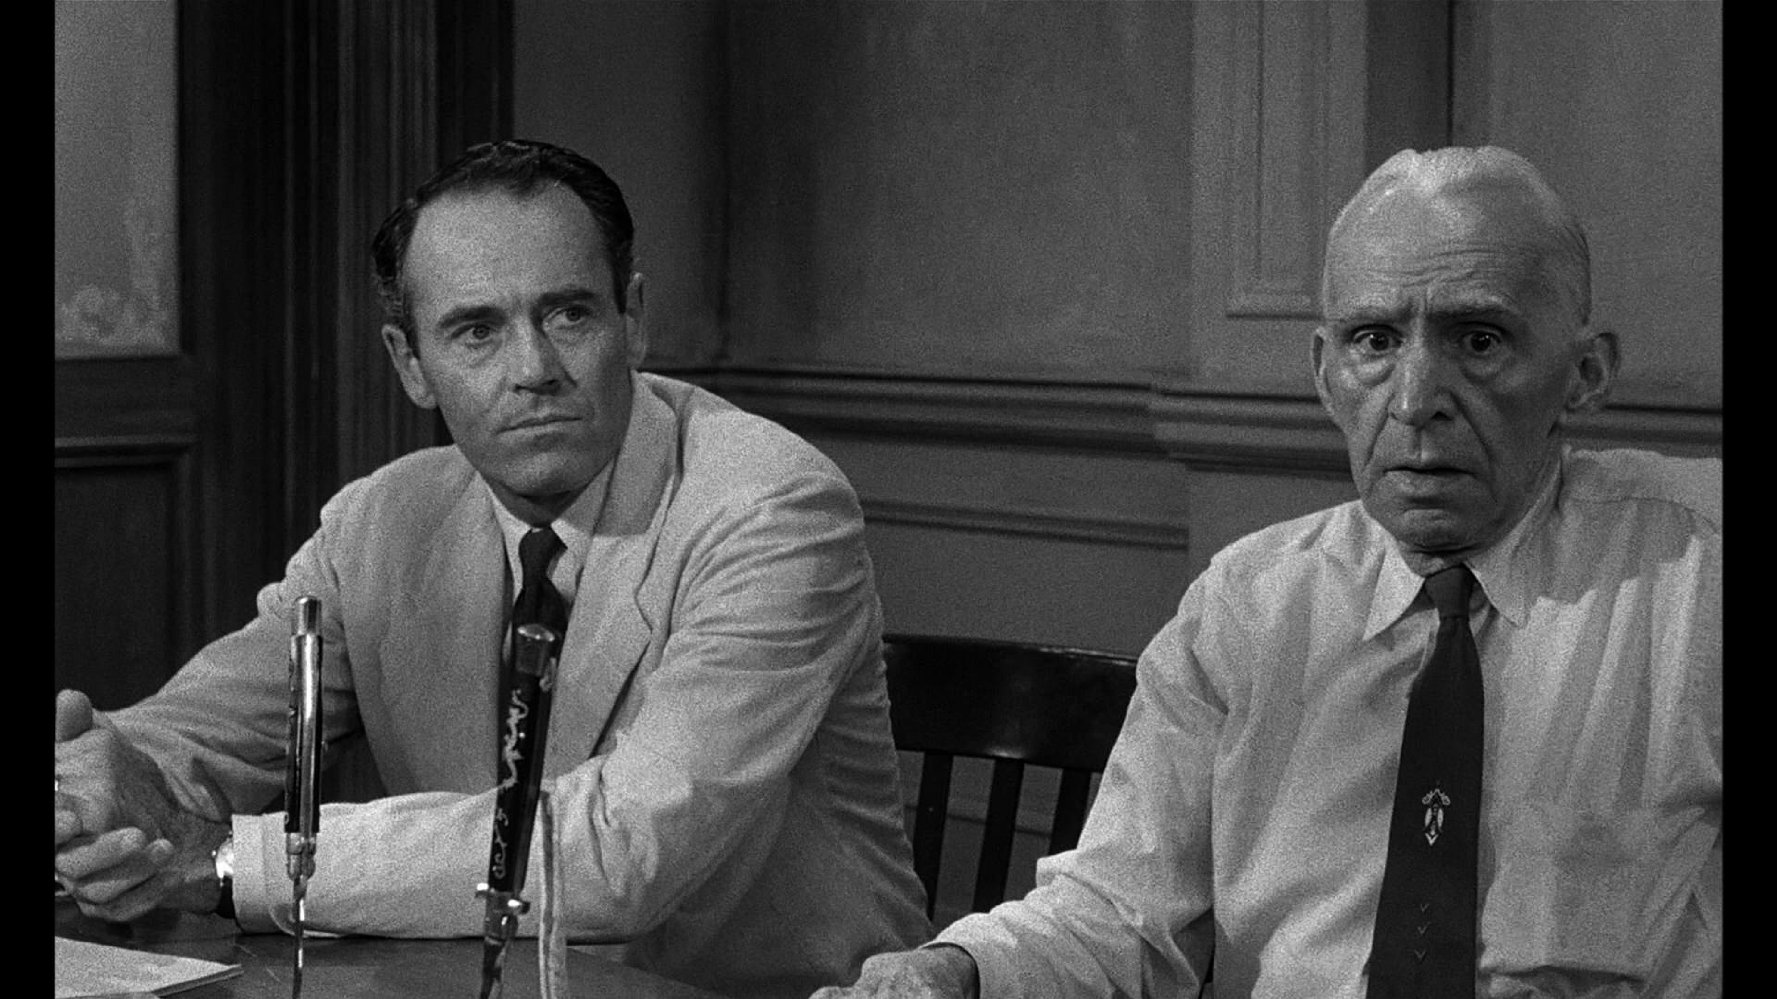 12 angry men jurors 4 and Twelve angry men quickly became a classic story for stage and screen and rose's cast of characters some of the most memorable in modern history yet, not one of the twelve jurors has a name, they are simply known by their juror numbers.